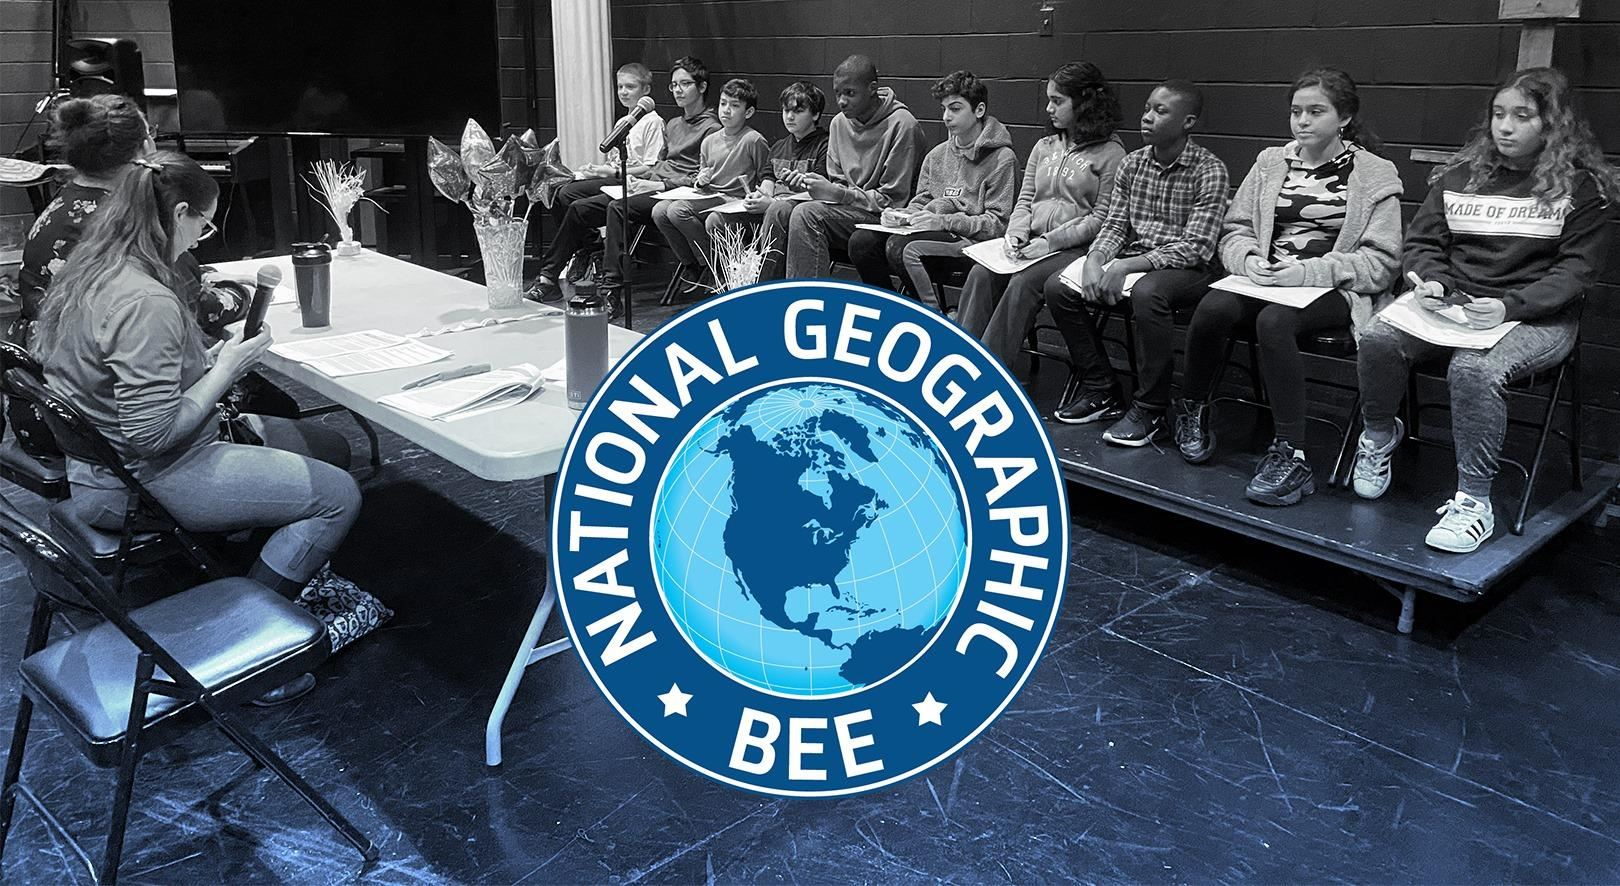 WMHS hosted its 3rd Annual Geographic Spelling Bee